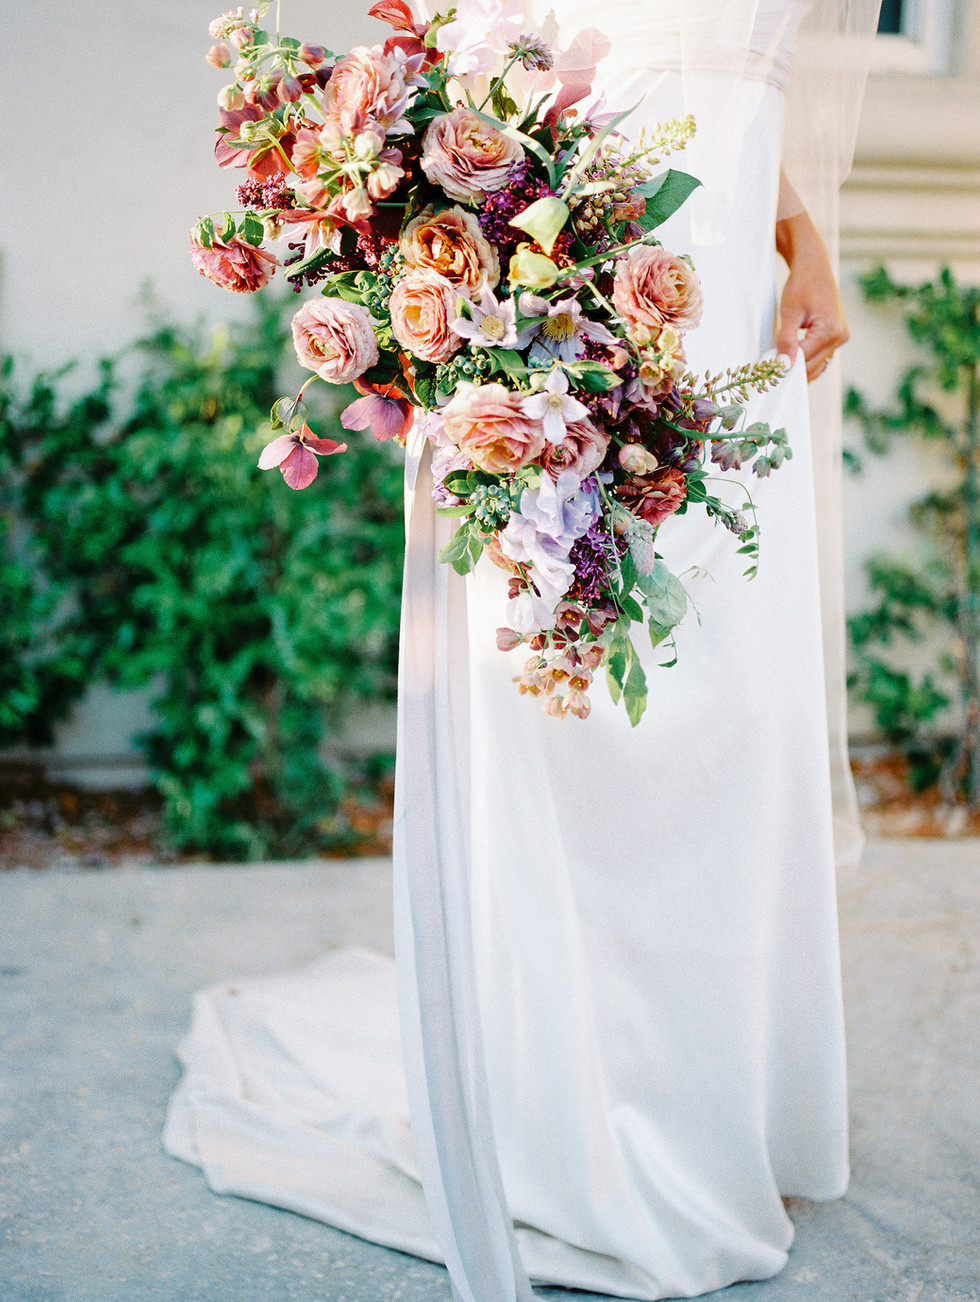 Bridal bouquet in shades of mauve, nude and plum. Photo: Shannon Elizabeth